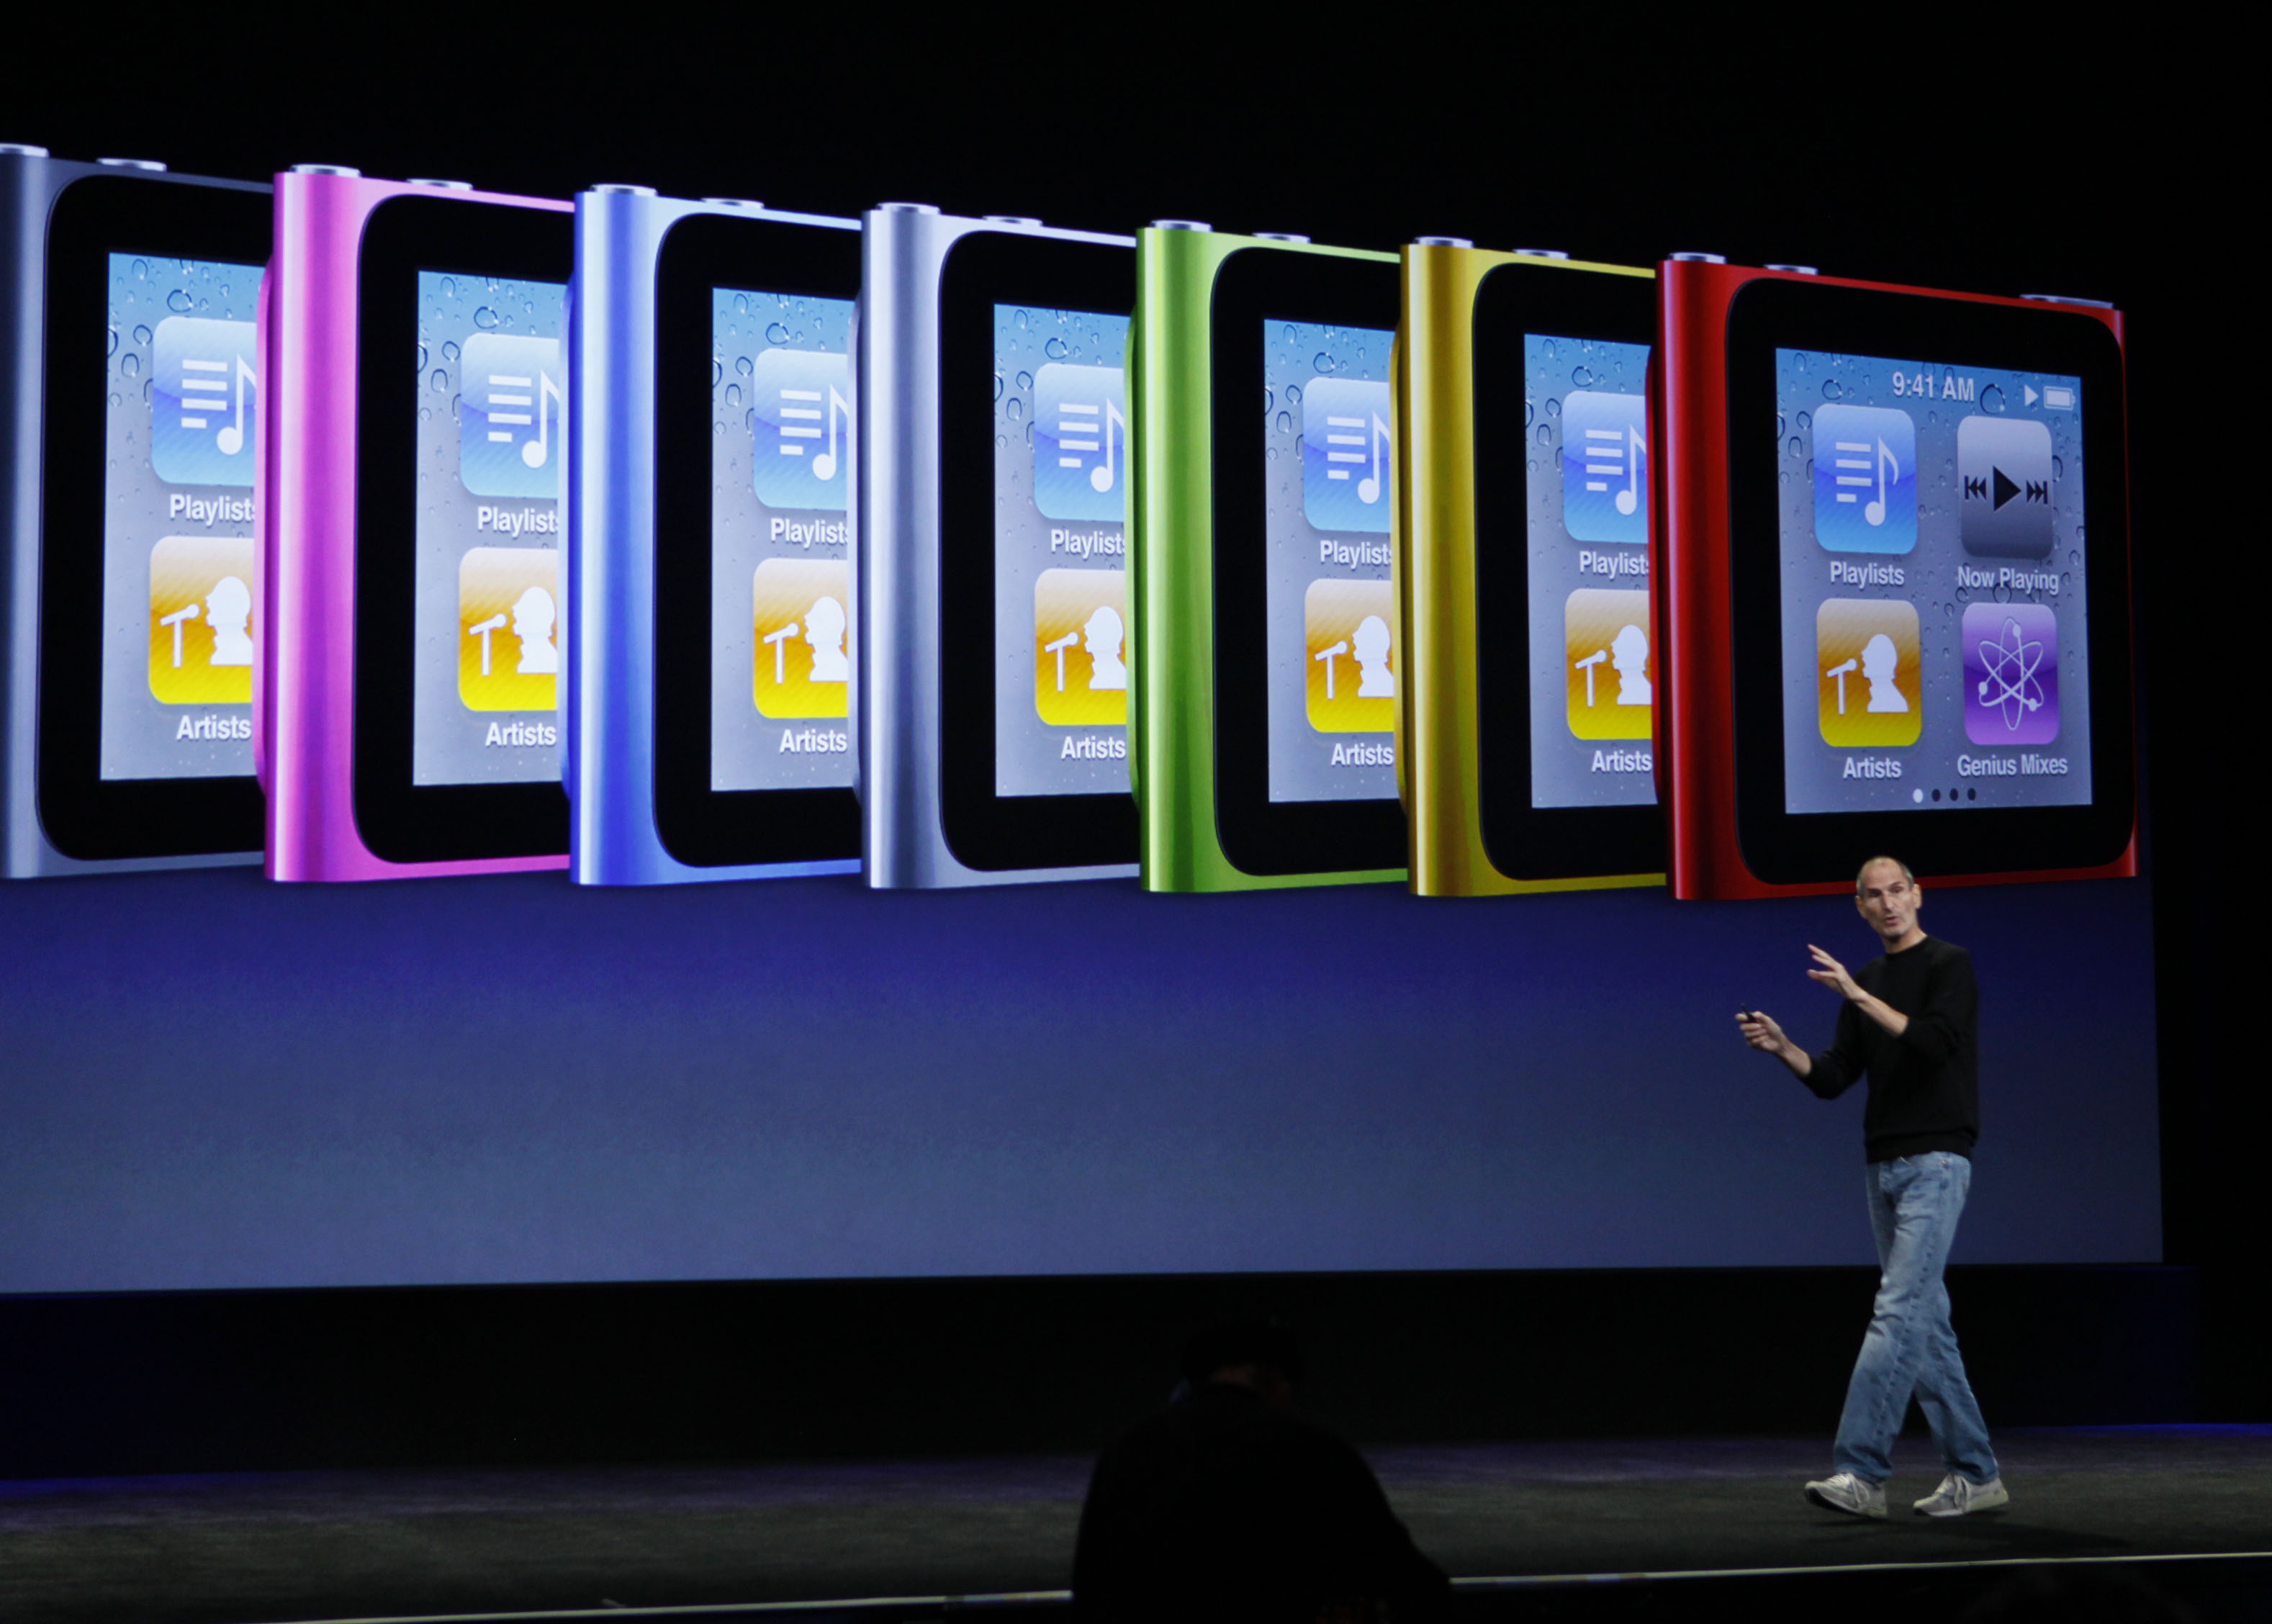 <div class='meta'><div class='origin-logo' data-origin='AP'></div><span class='caption-text' data-credit='AP Photo/Paul Sakuma'>Apple CEO Steve Jobs discusses the features of the new Apple iPod Nano at a news conference in San Francisco, Wednesday, Sept. 1, 2010.</span></div>